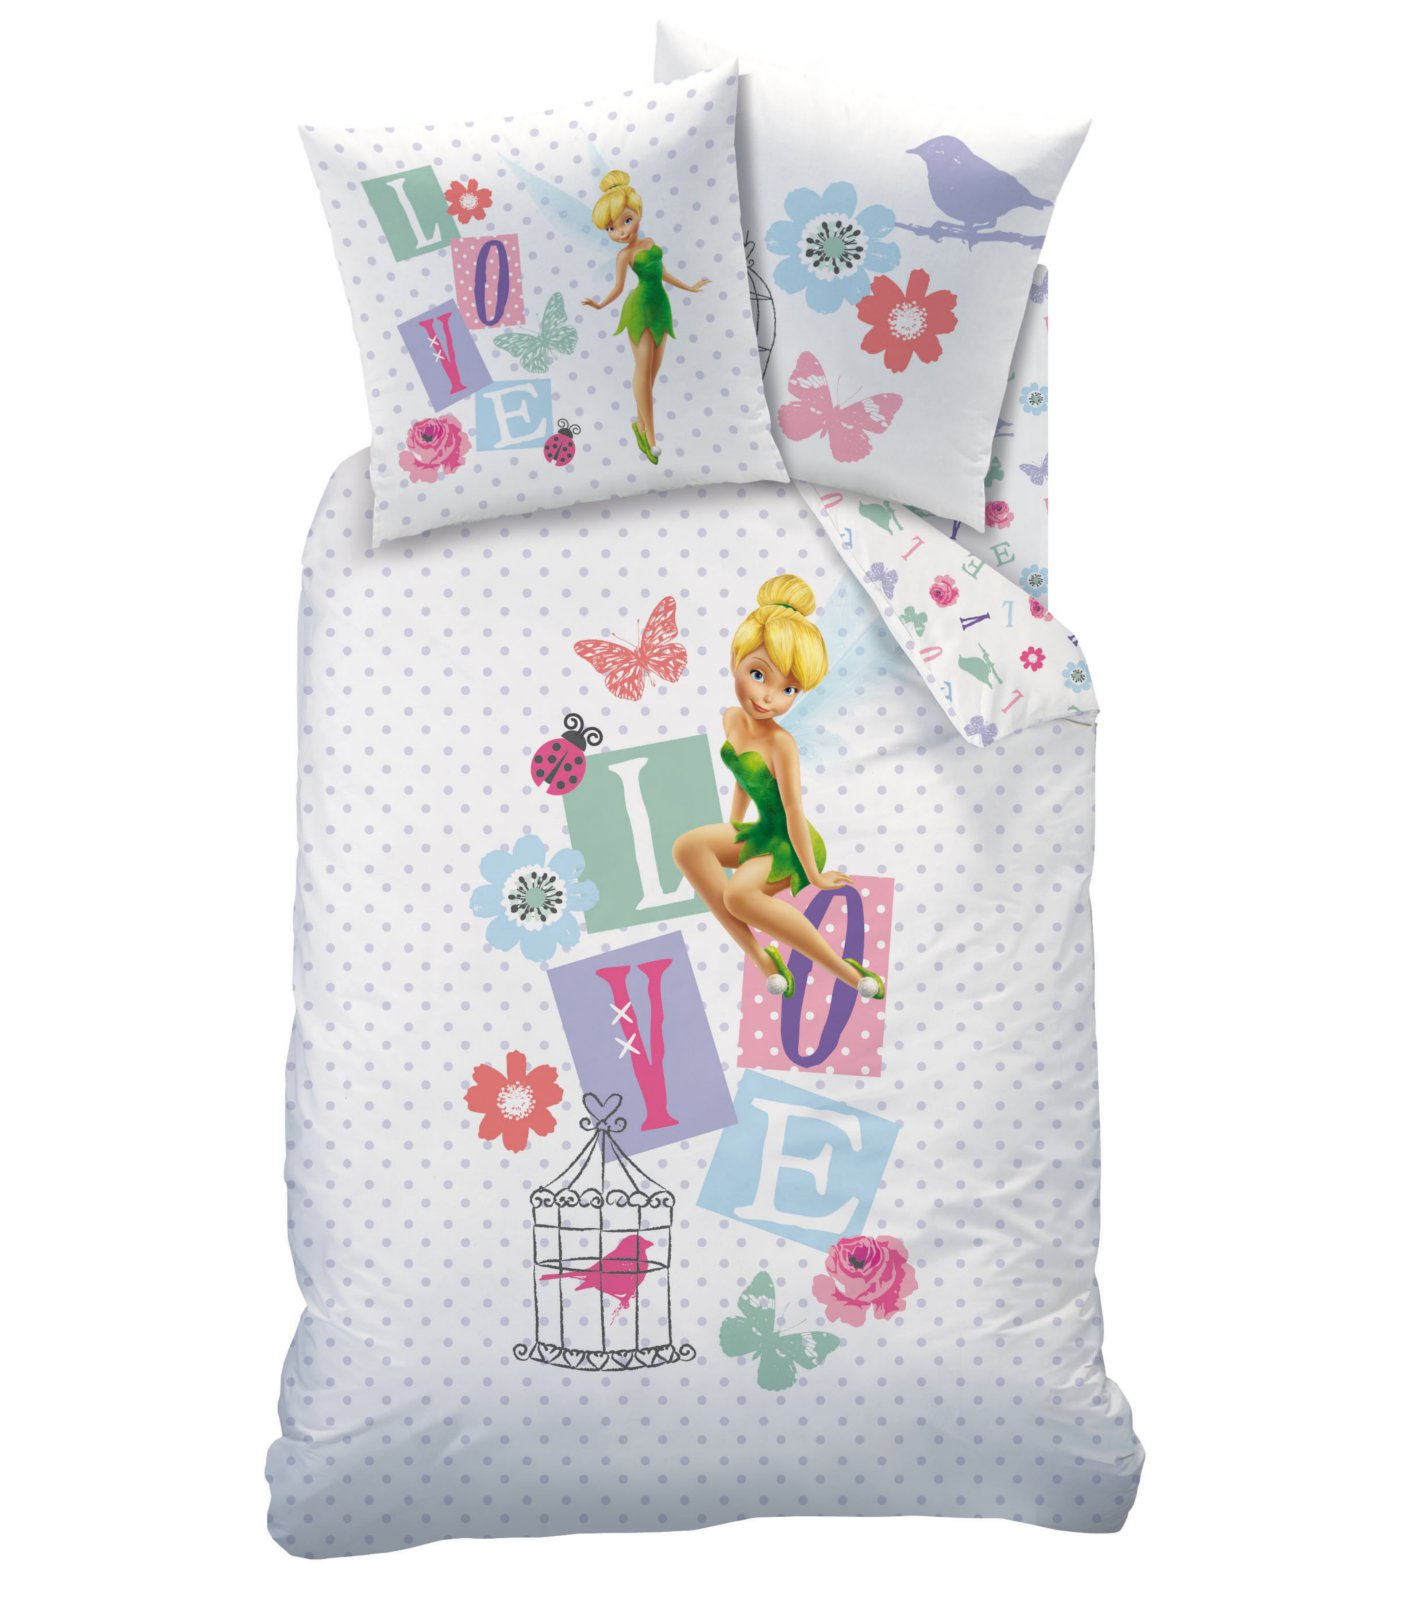 housse de couette f e clochette disney fairies parure de lit 140 x 200 cm jardin des. Black Bedroom Furniture Sets. Home Design Ideas